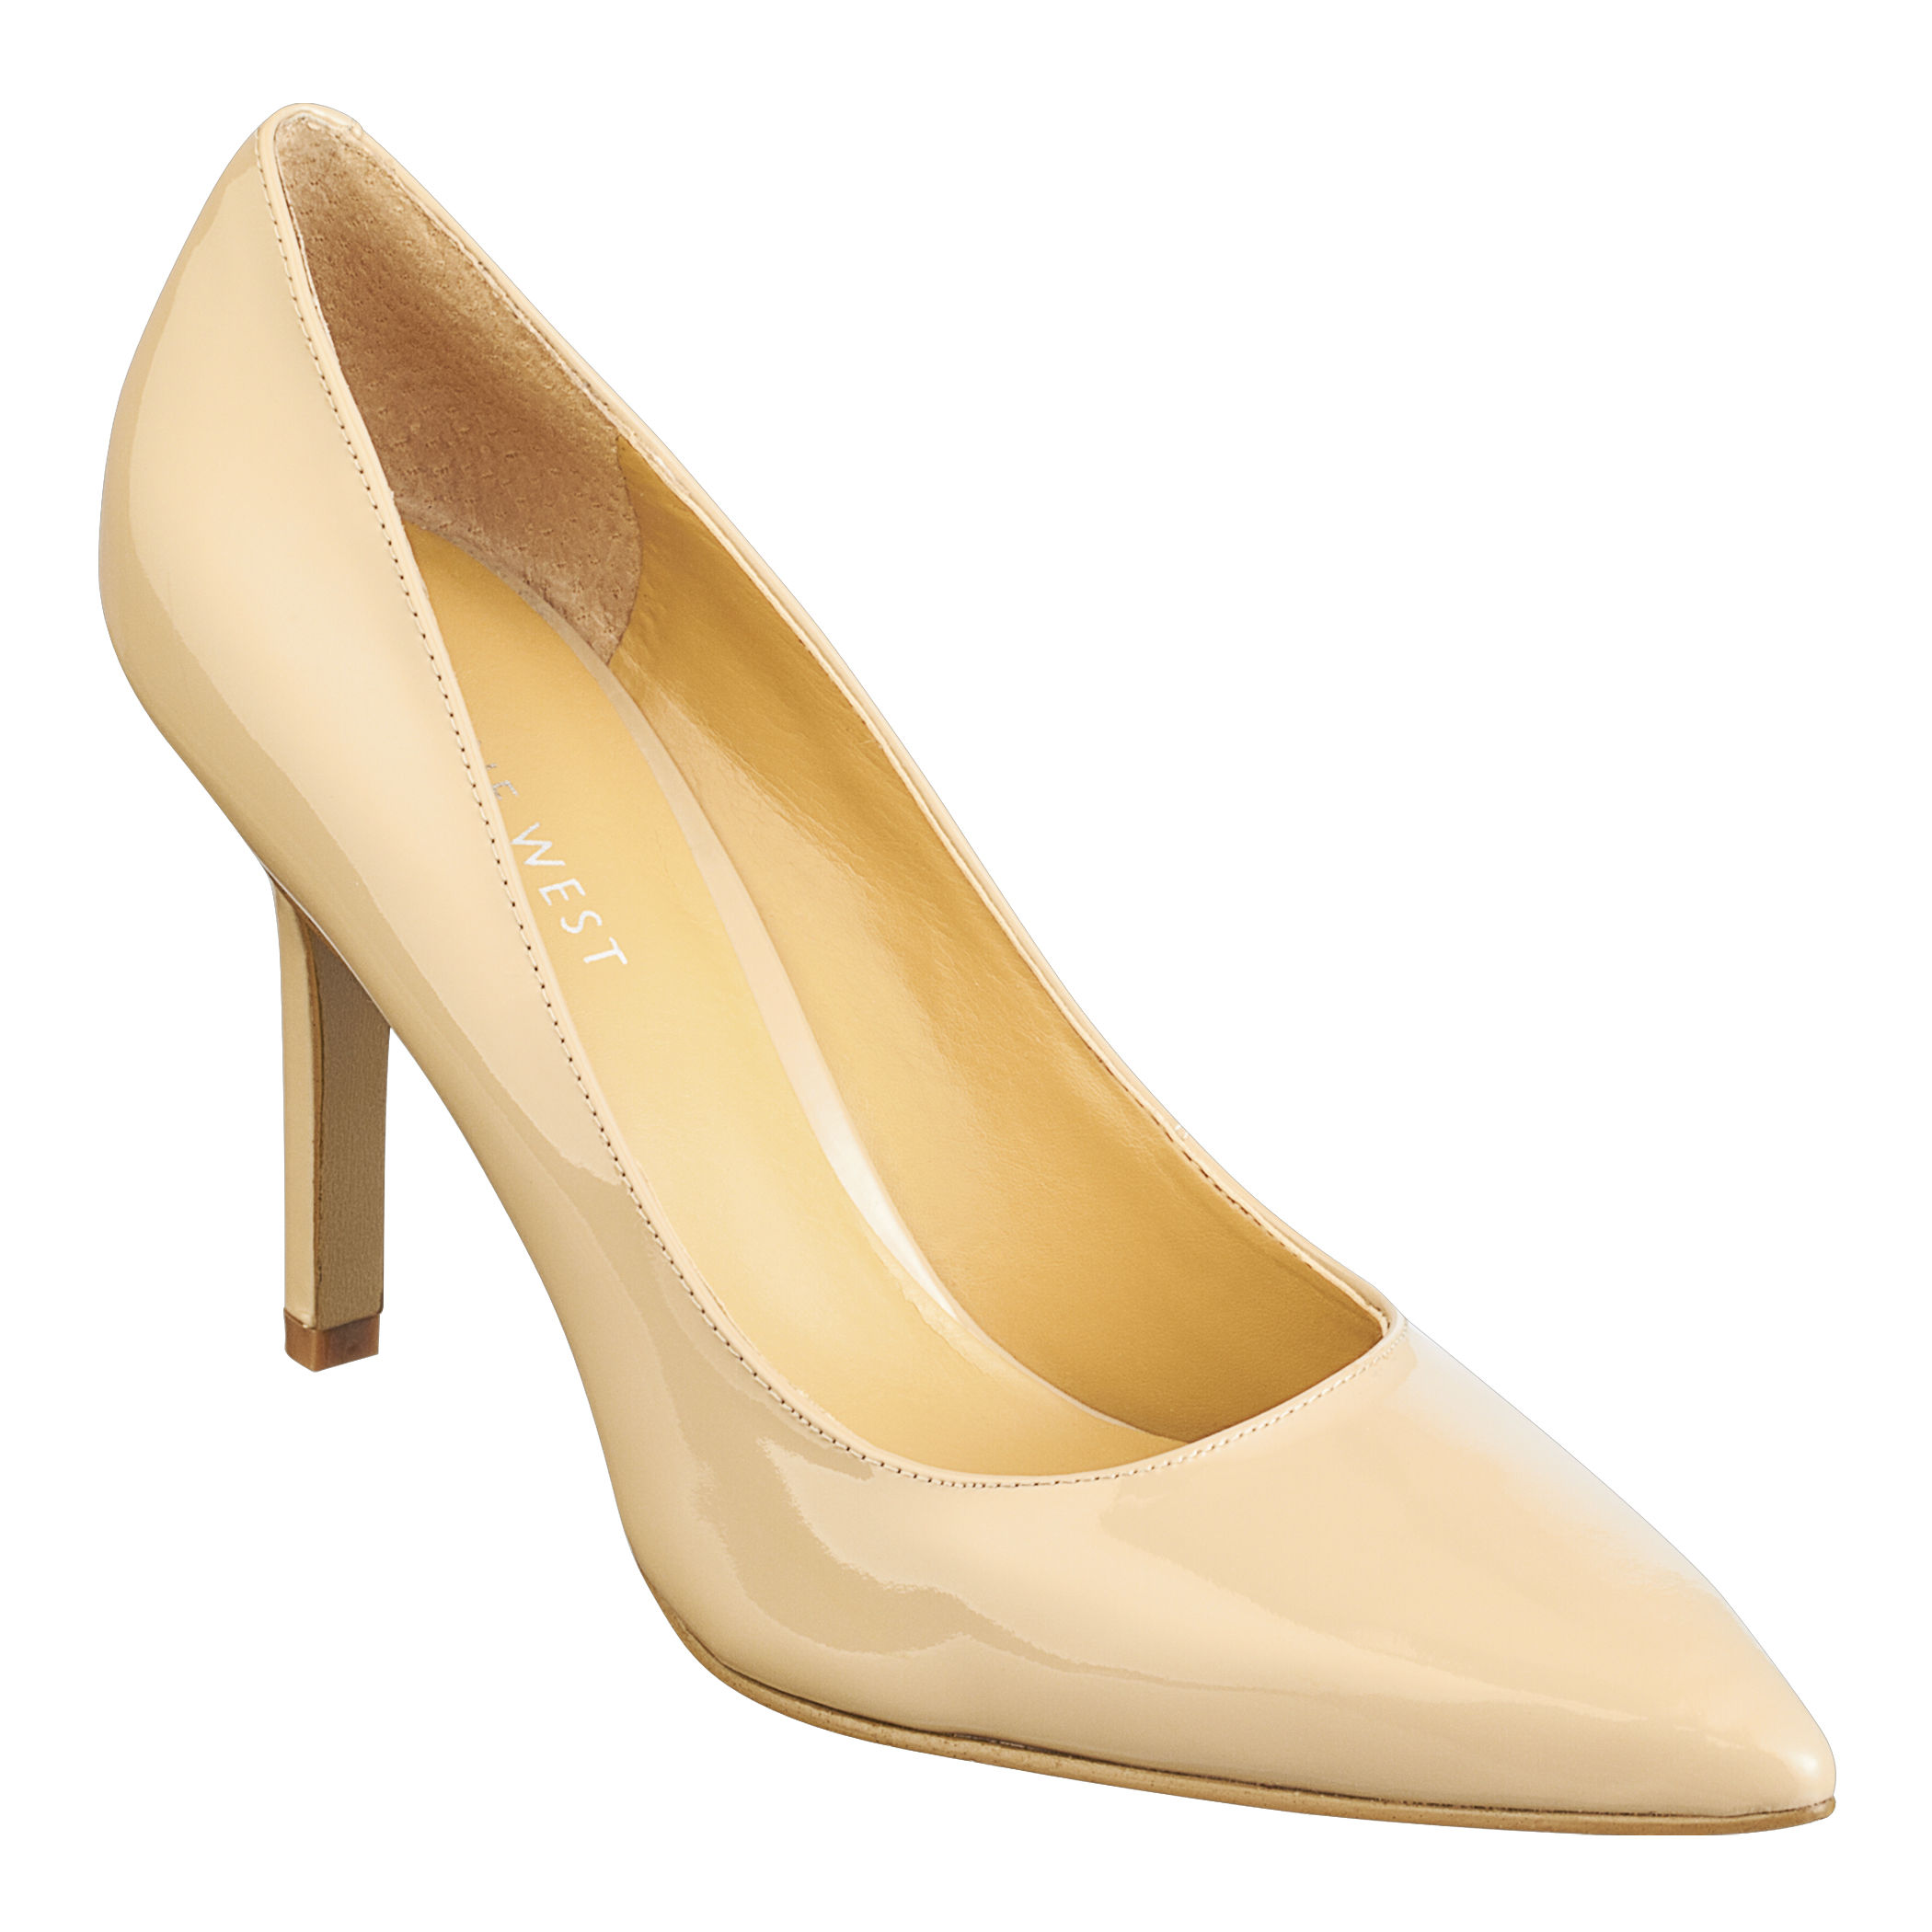 9e72cdba74f Lyst - Nine West Martina Pointy Toe Pumps in Natural